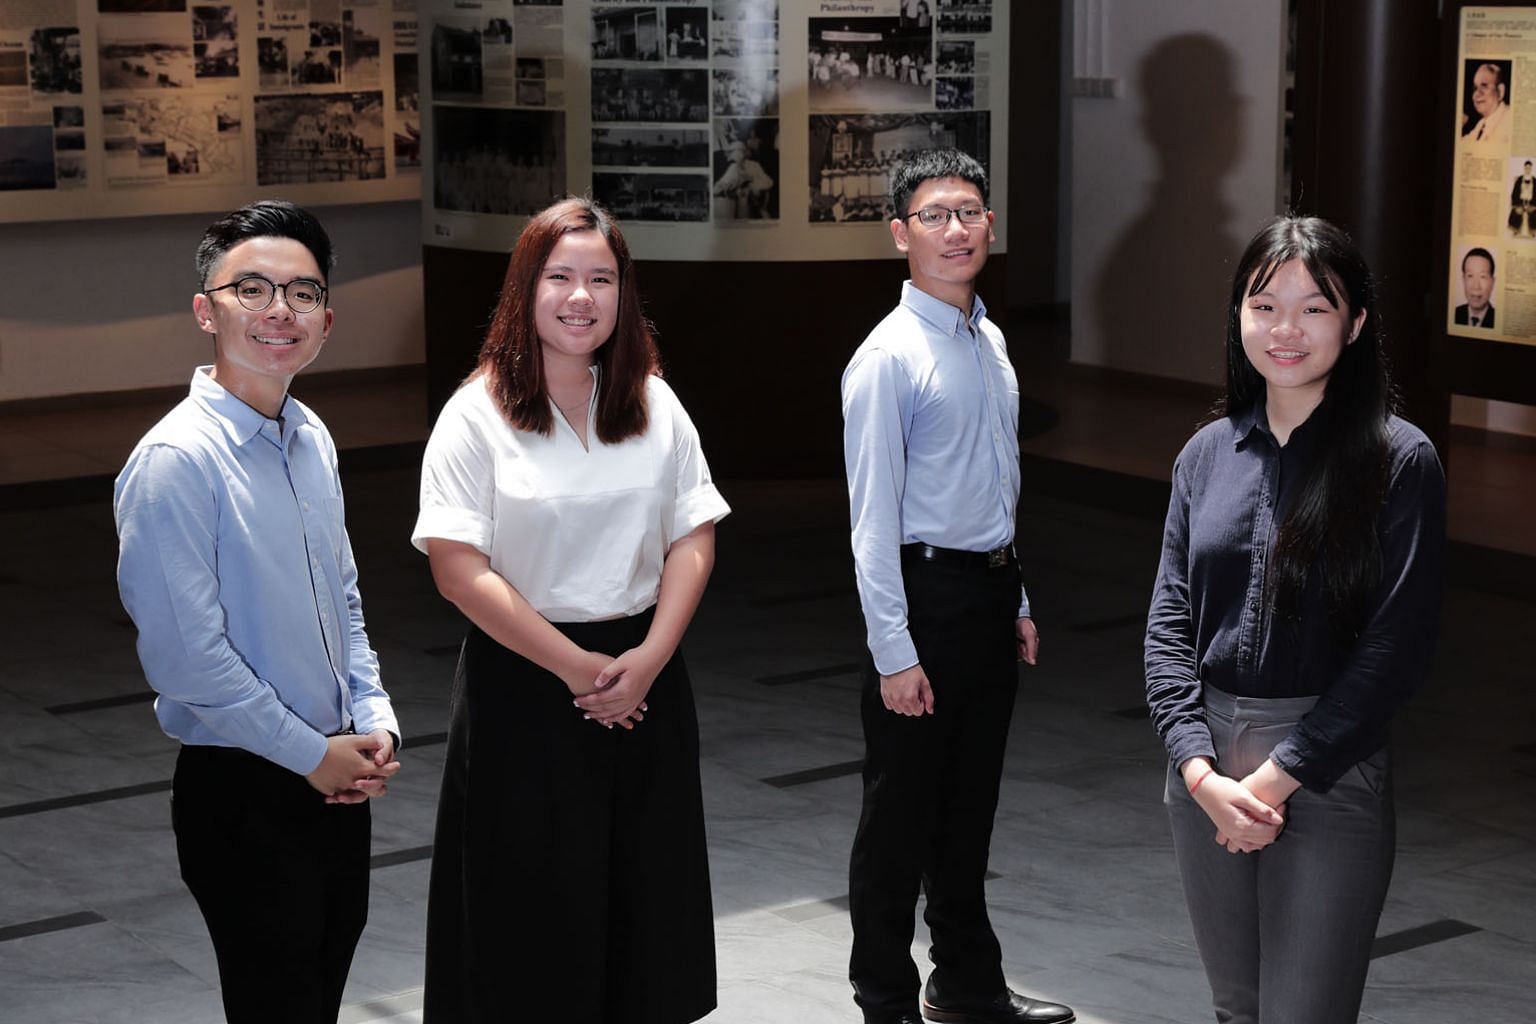 (From left) Mr Ng Joong Hwee, Ms Jazlin Tan Kaiqian and Mr Loy Wei Peng from Hwa Chong Institution, as well as Ms Grace Chong Qiao Yi from Eunoia Junior College clinched the Singapore Federation of Chinese Clan Associations' bond-free scholarship to